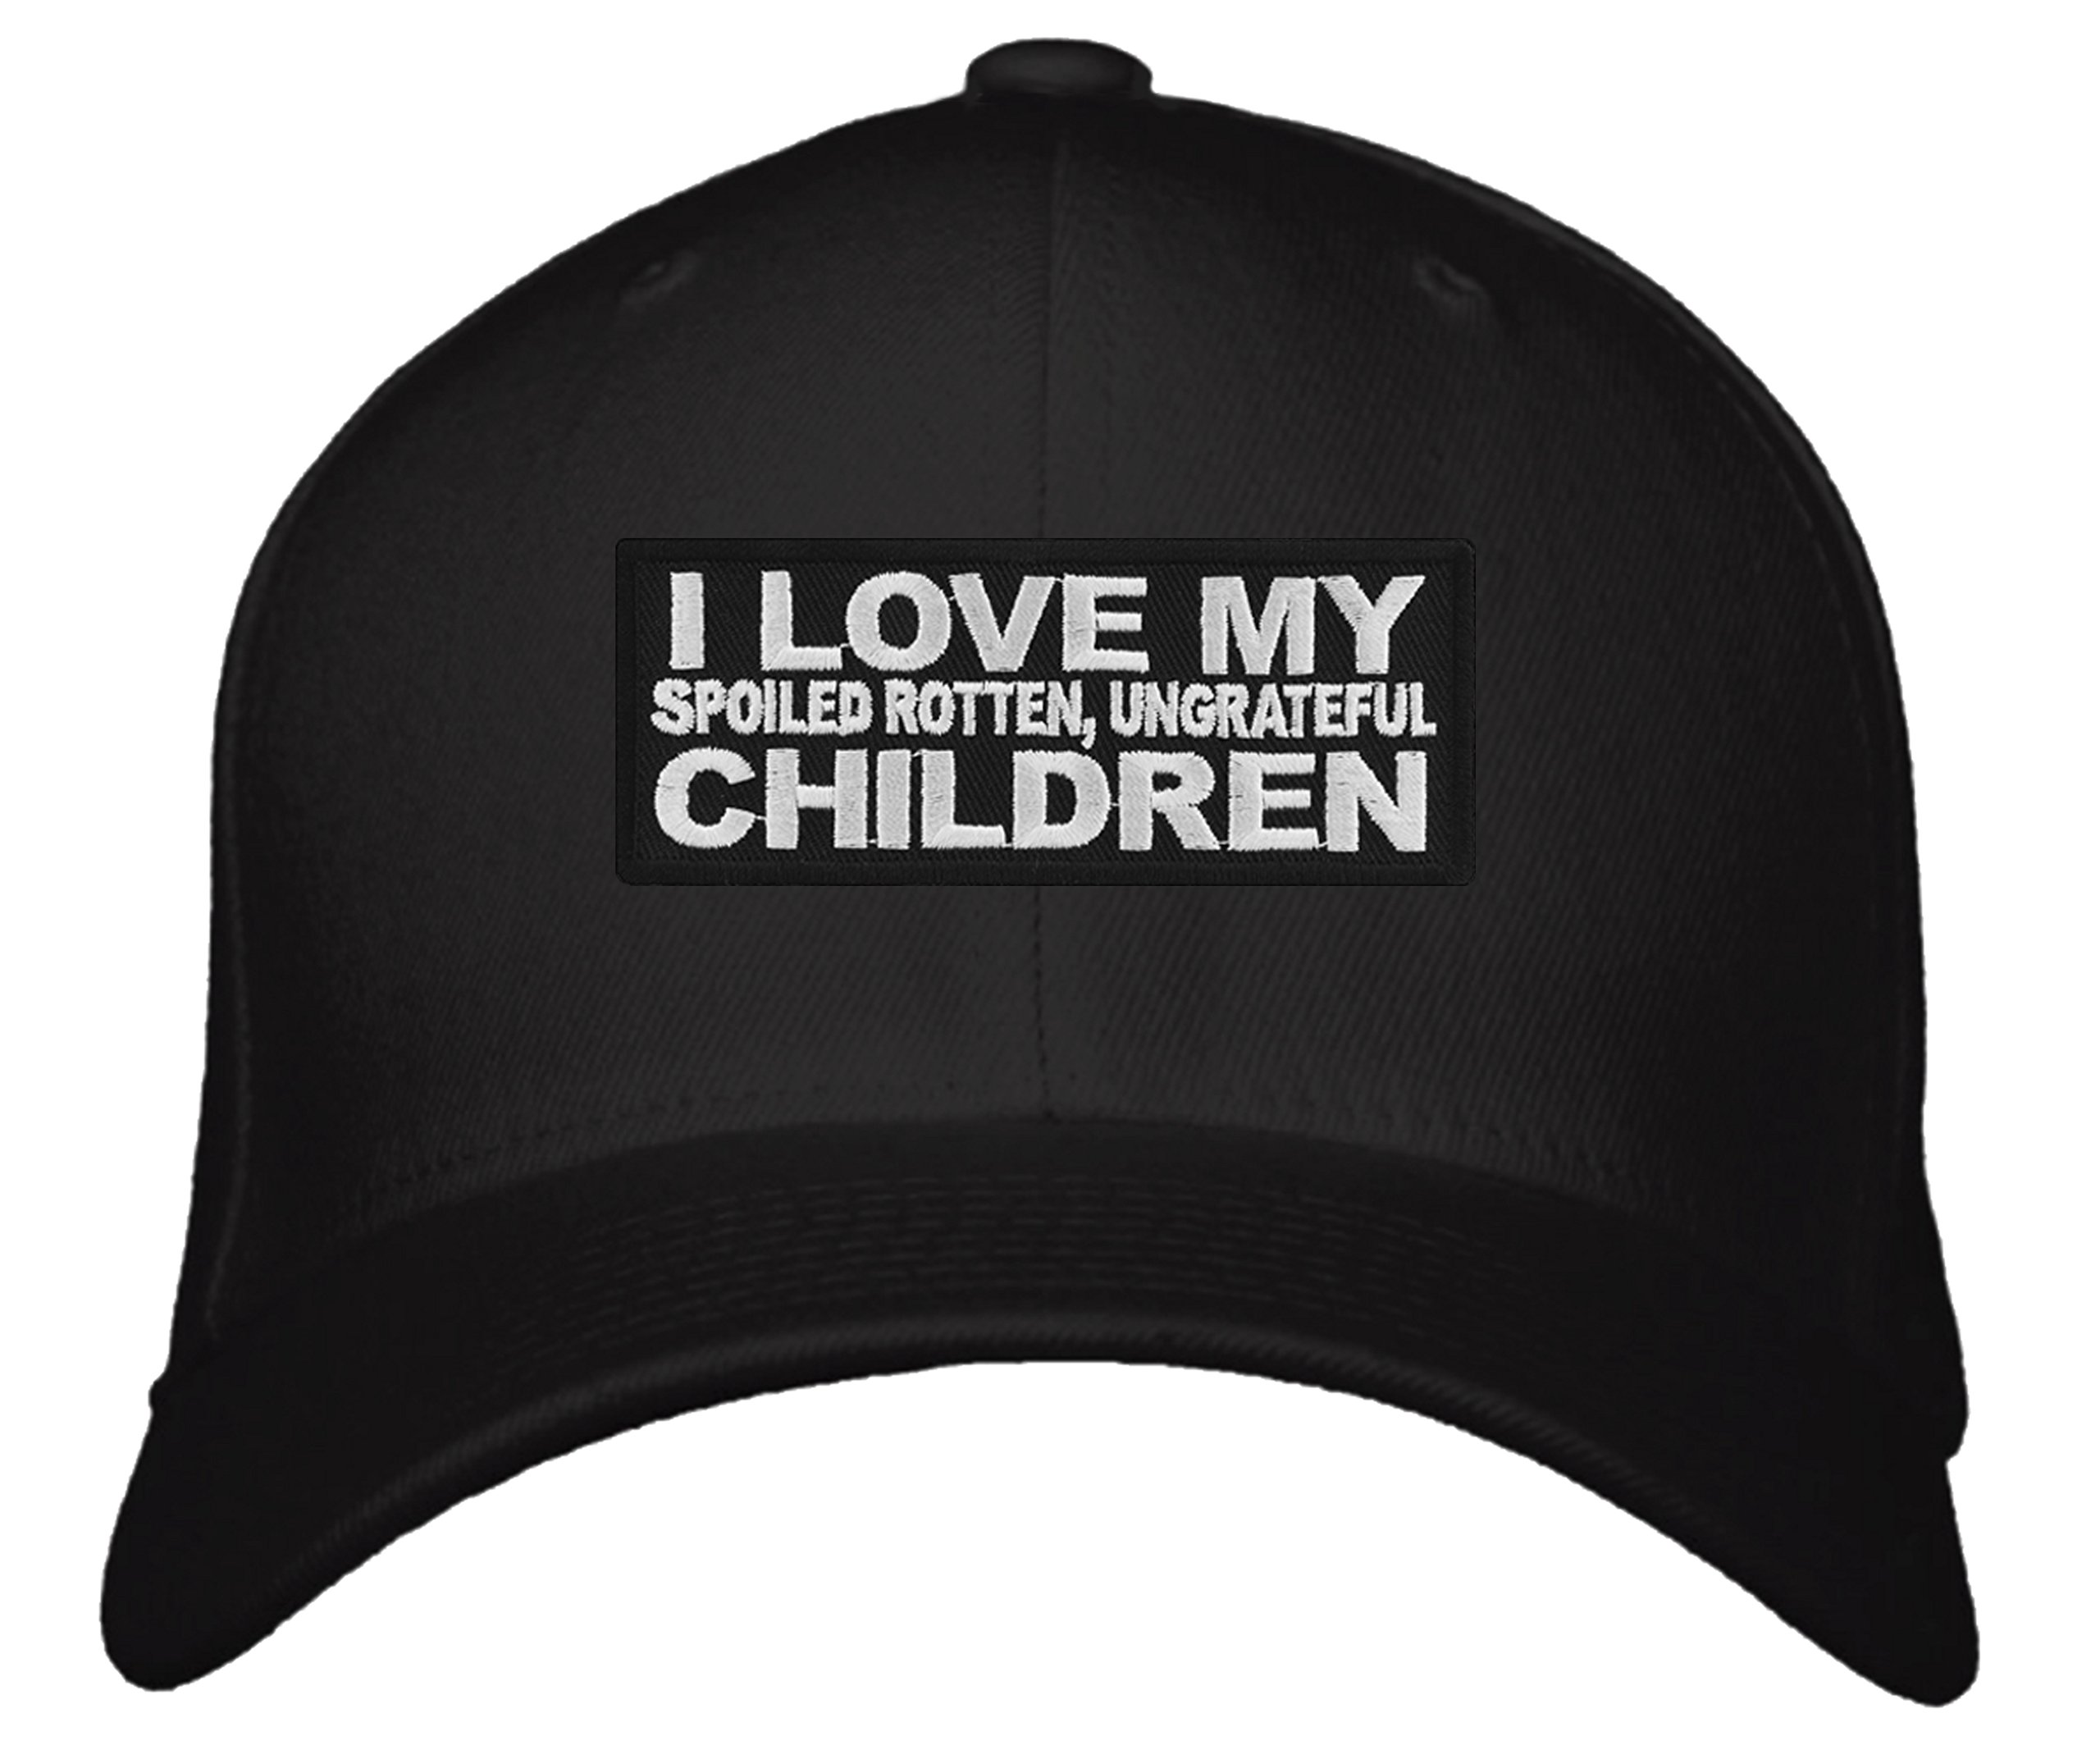 I Love My Spoiled Rotten Ungrateful Children Hat - Funny Quote Cap Great Gift for Dad (Black)